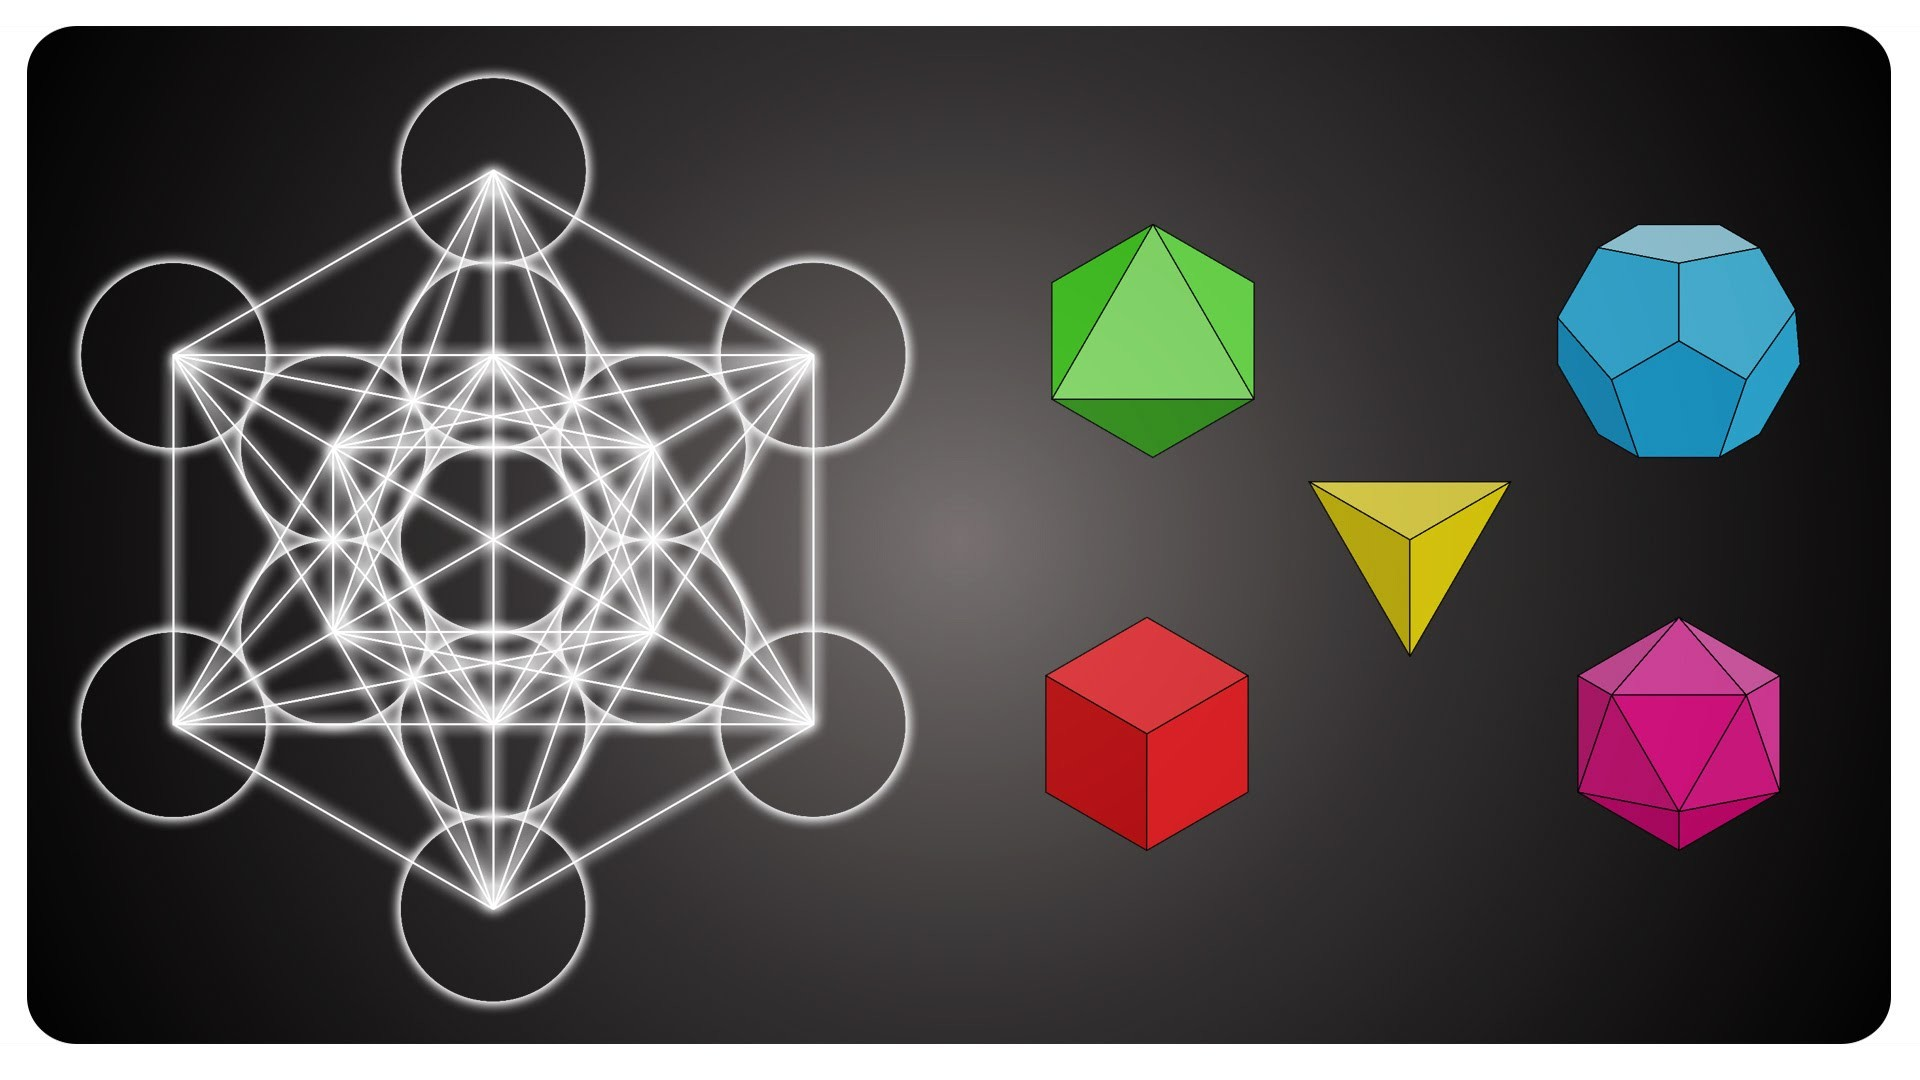 1920x1080 Metatron's cube and the platonic solids - sacred geometry (english version)  - YouTube